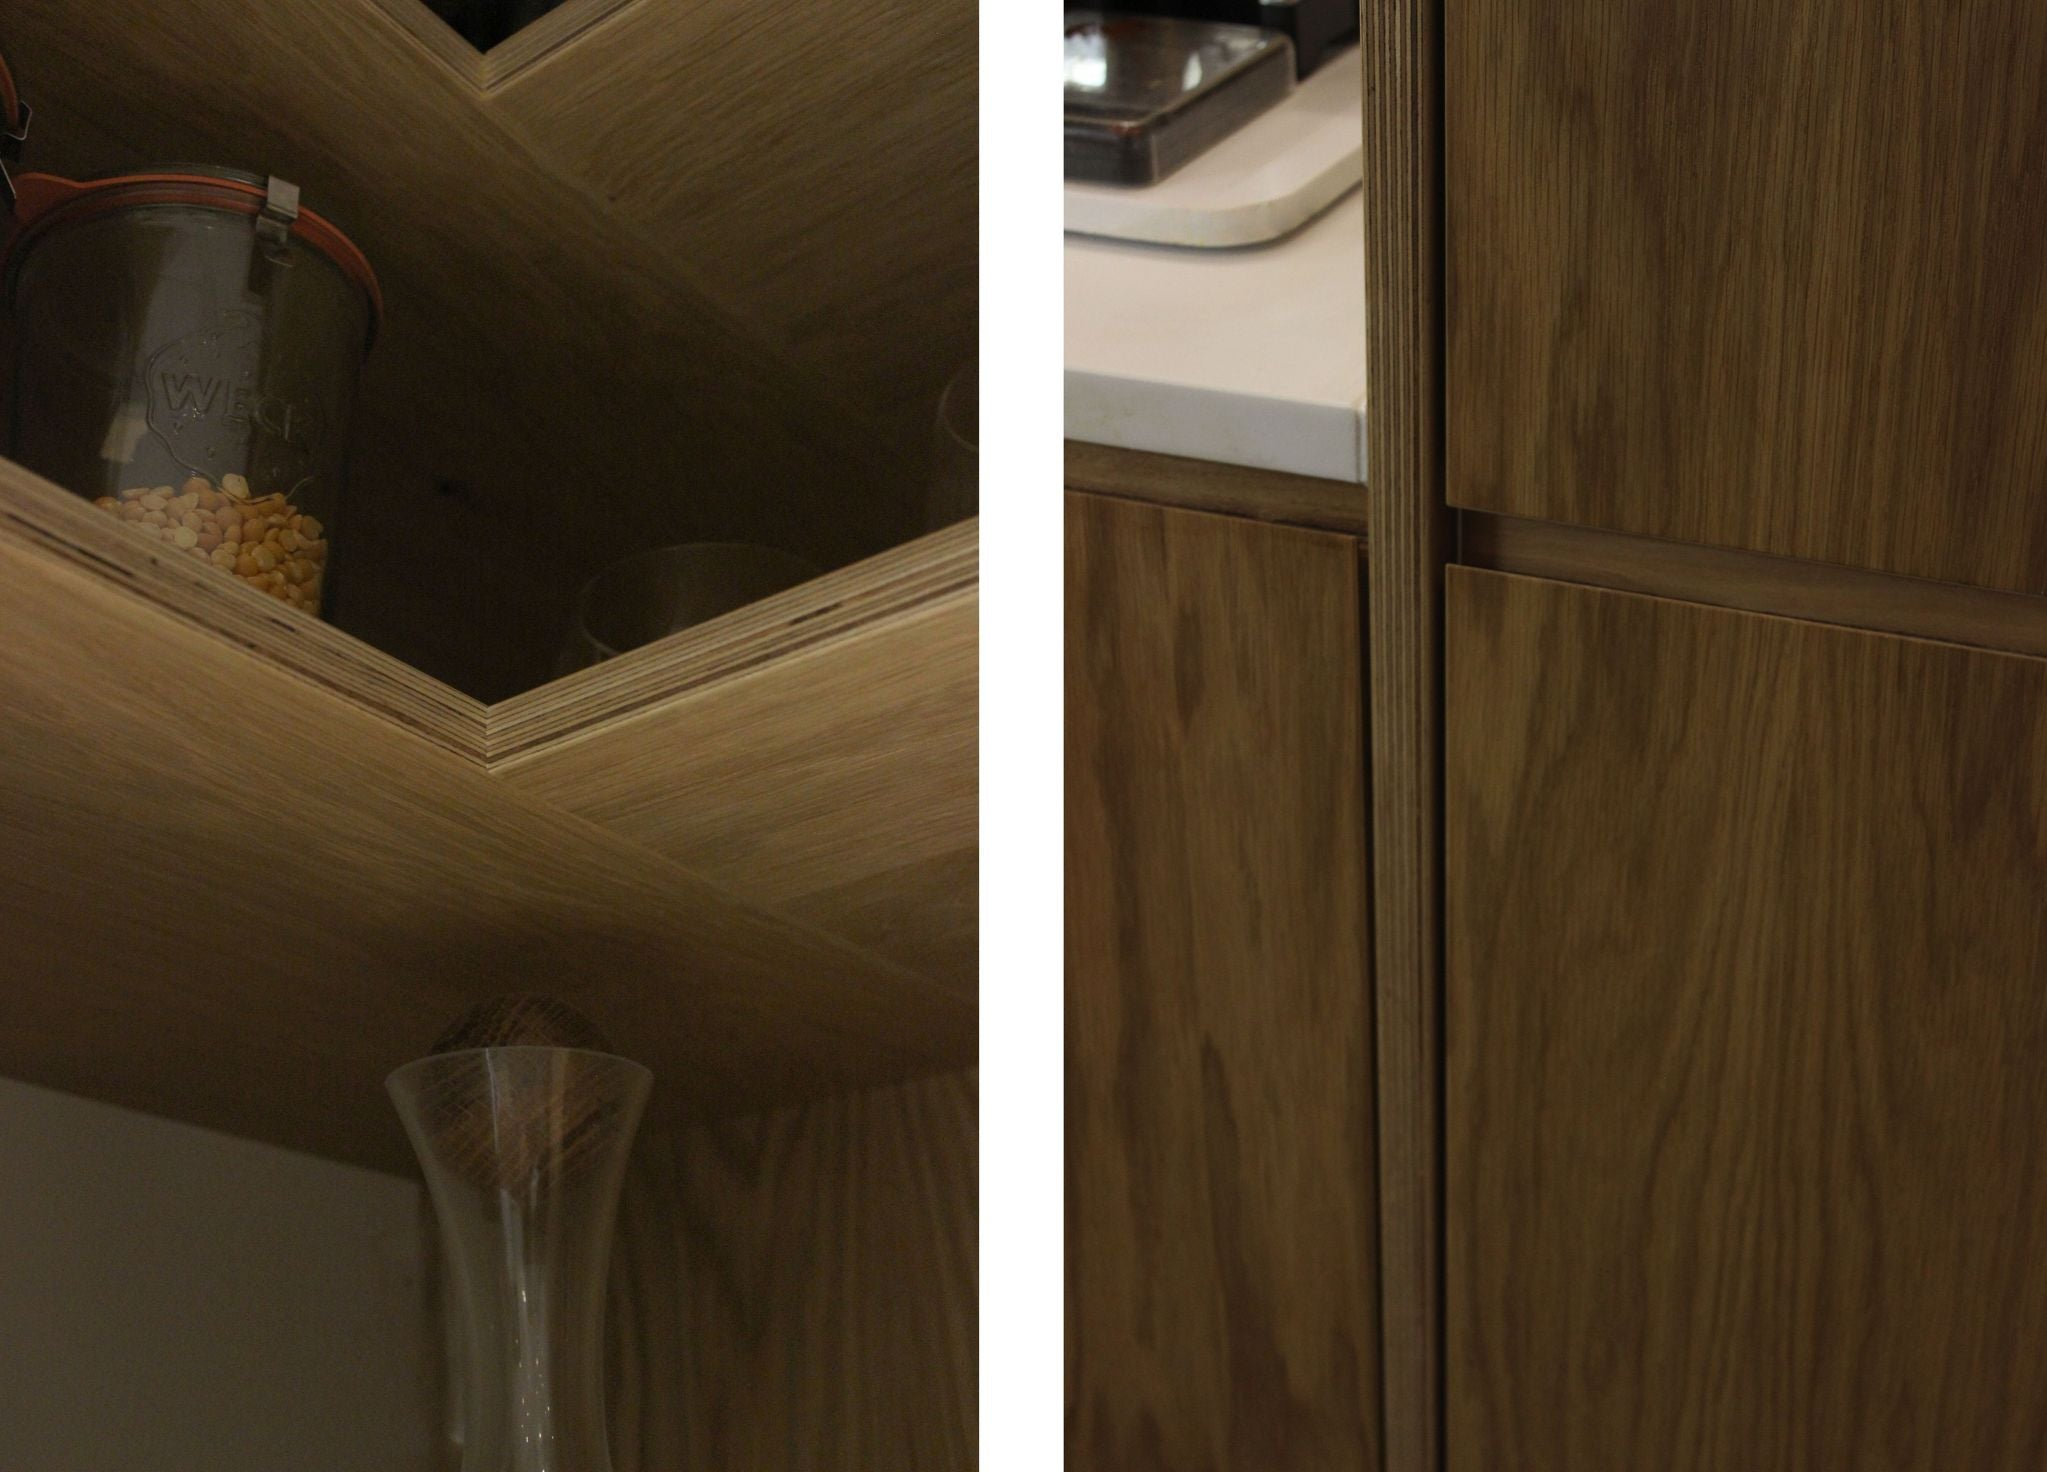 Bespoke oak veneer shelves for the kitchen made by Jon Grant London in East London.